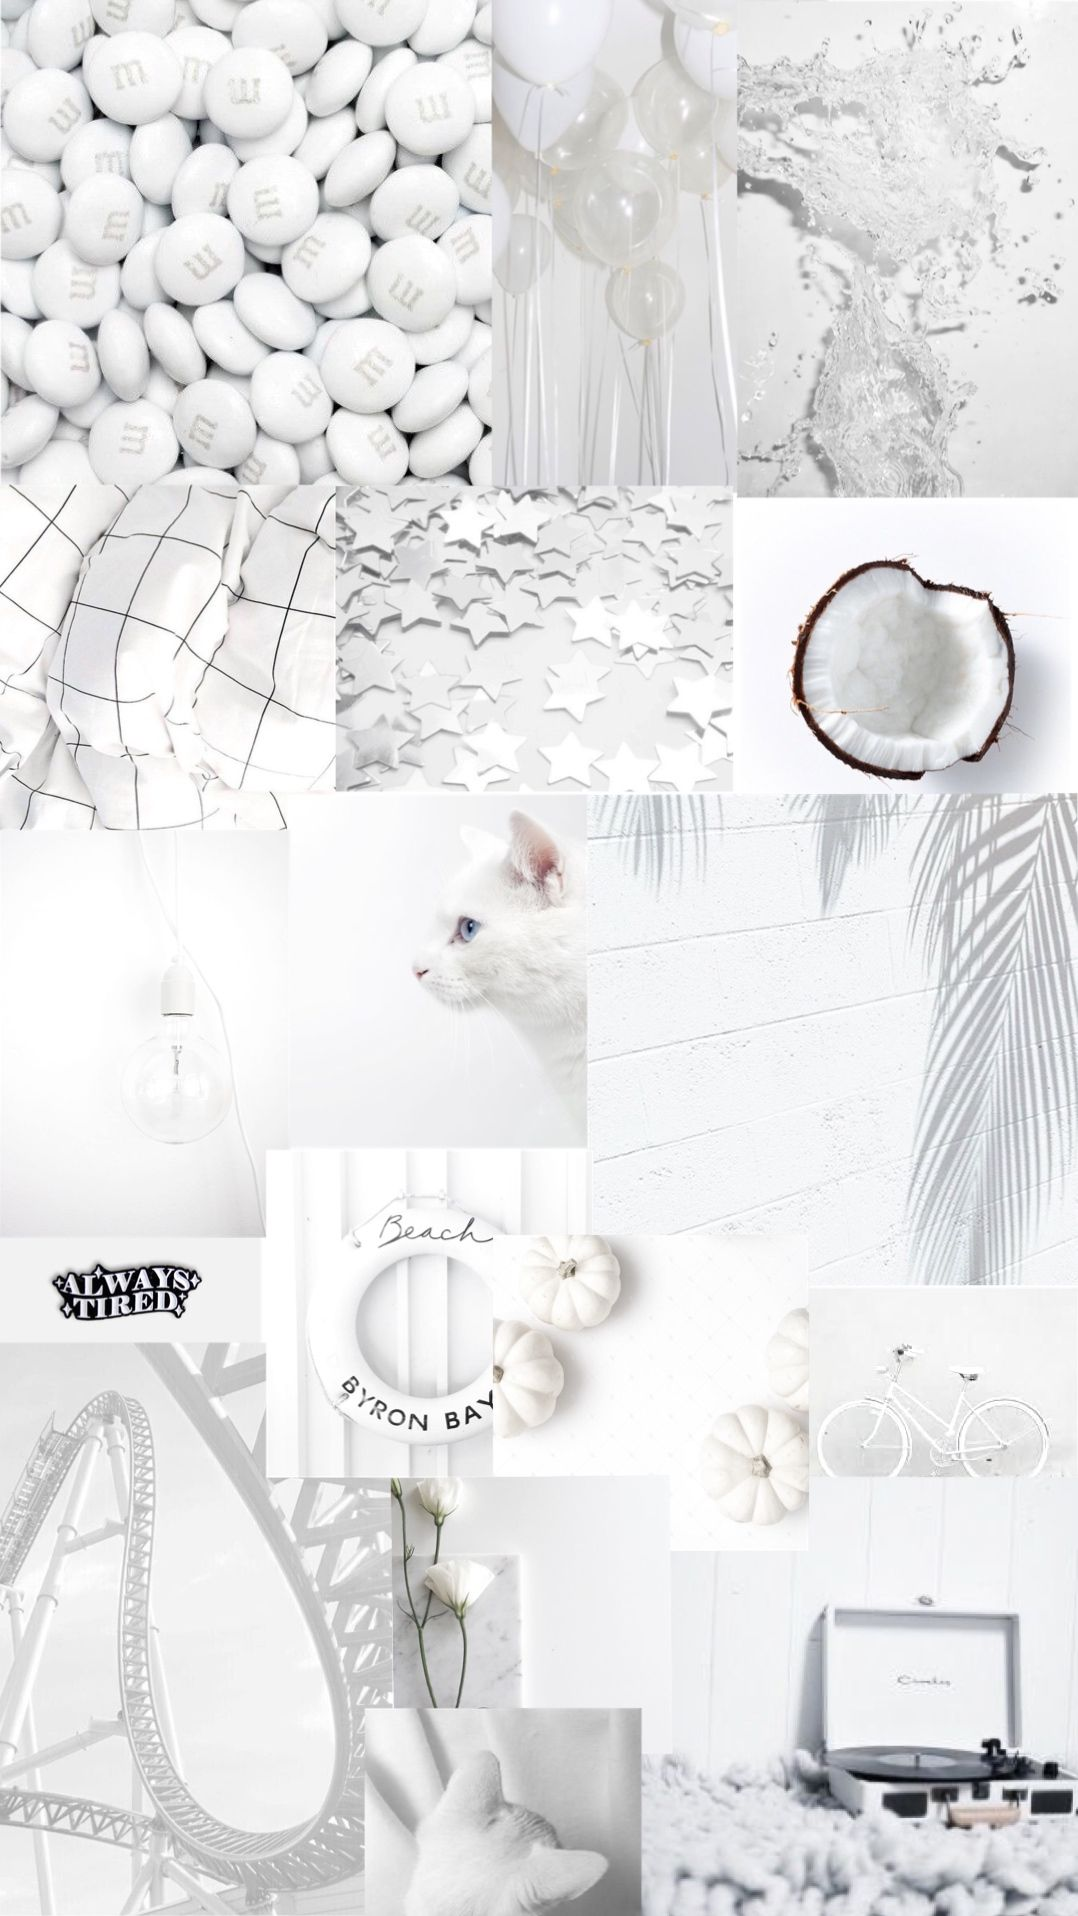 White Aesthetic Background Galaxy Wallpaper Kertas Dinding Ruang Seni